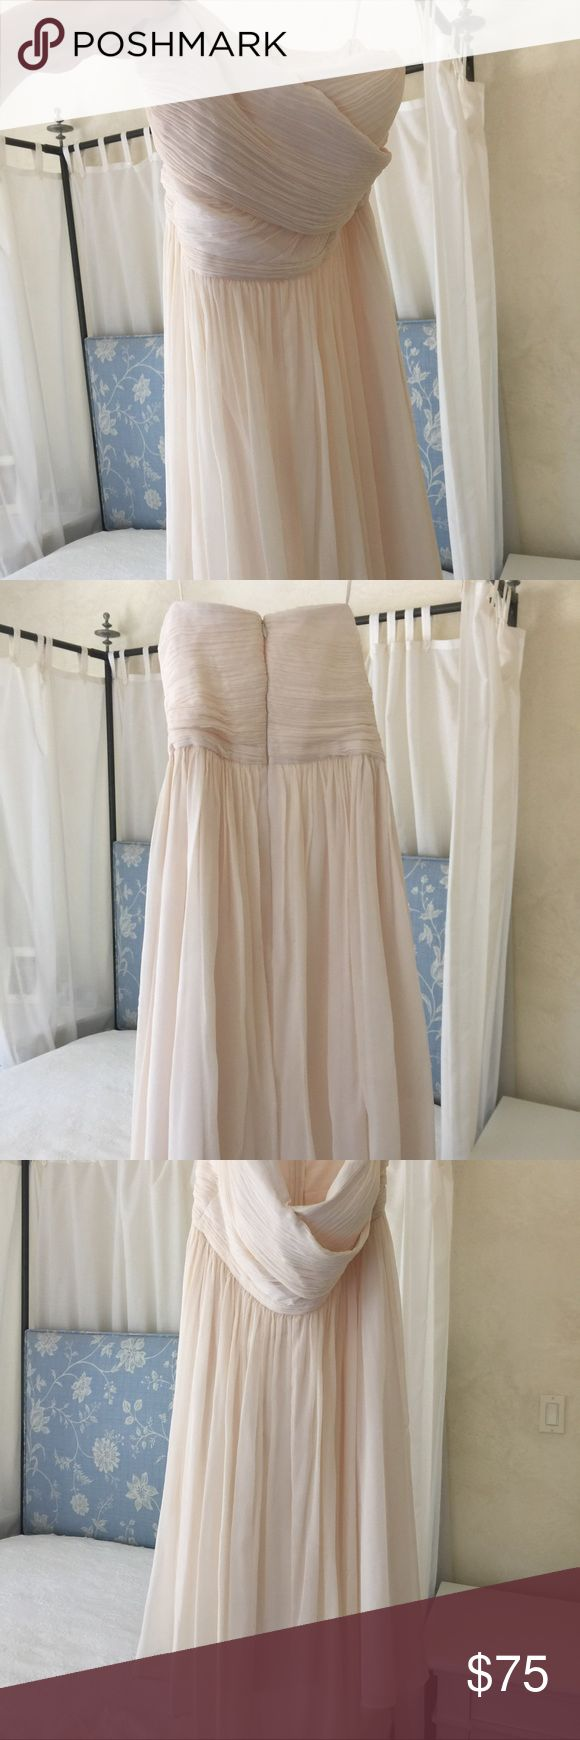 Champagne j crew dress size tall 8 Champagne j crew dress size tall 8 (bridesmaid dress). Small dirt stain at bottom as pictured J. Crew Dresses Wedding